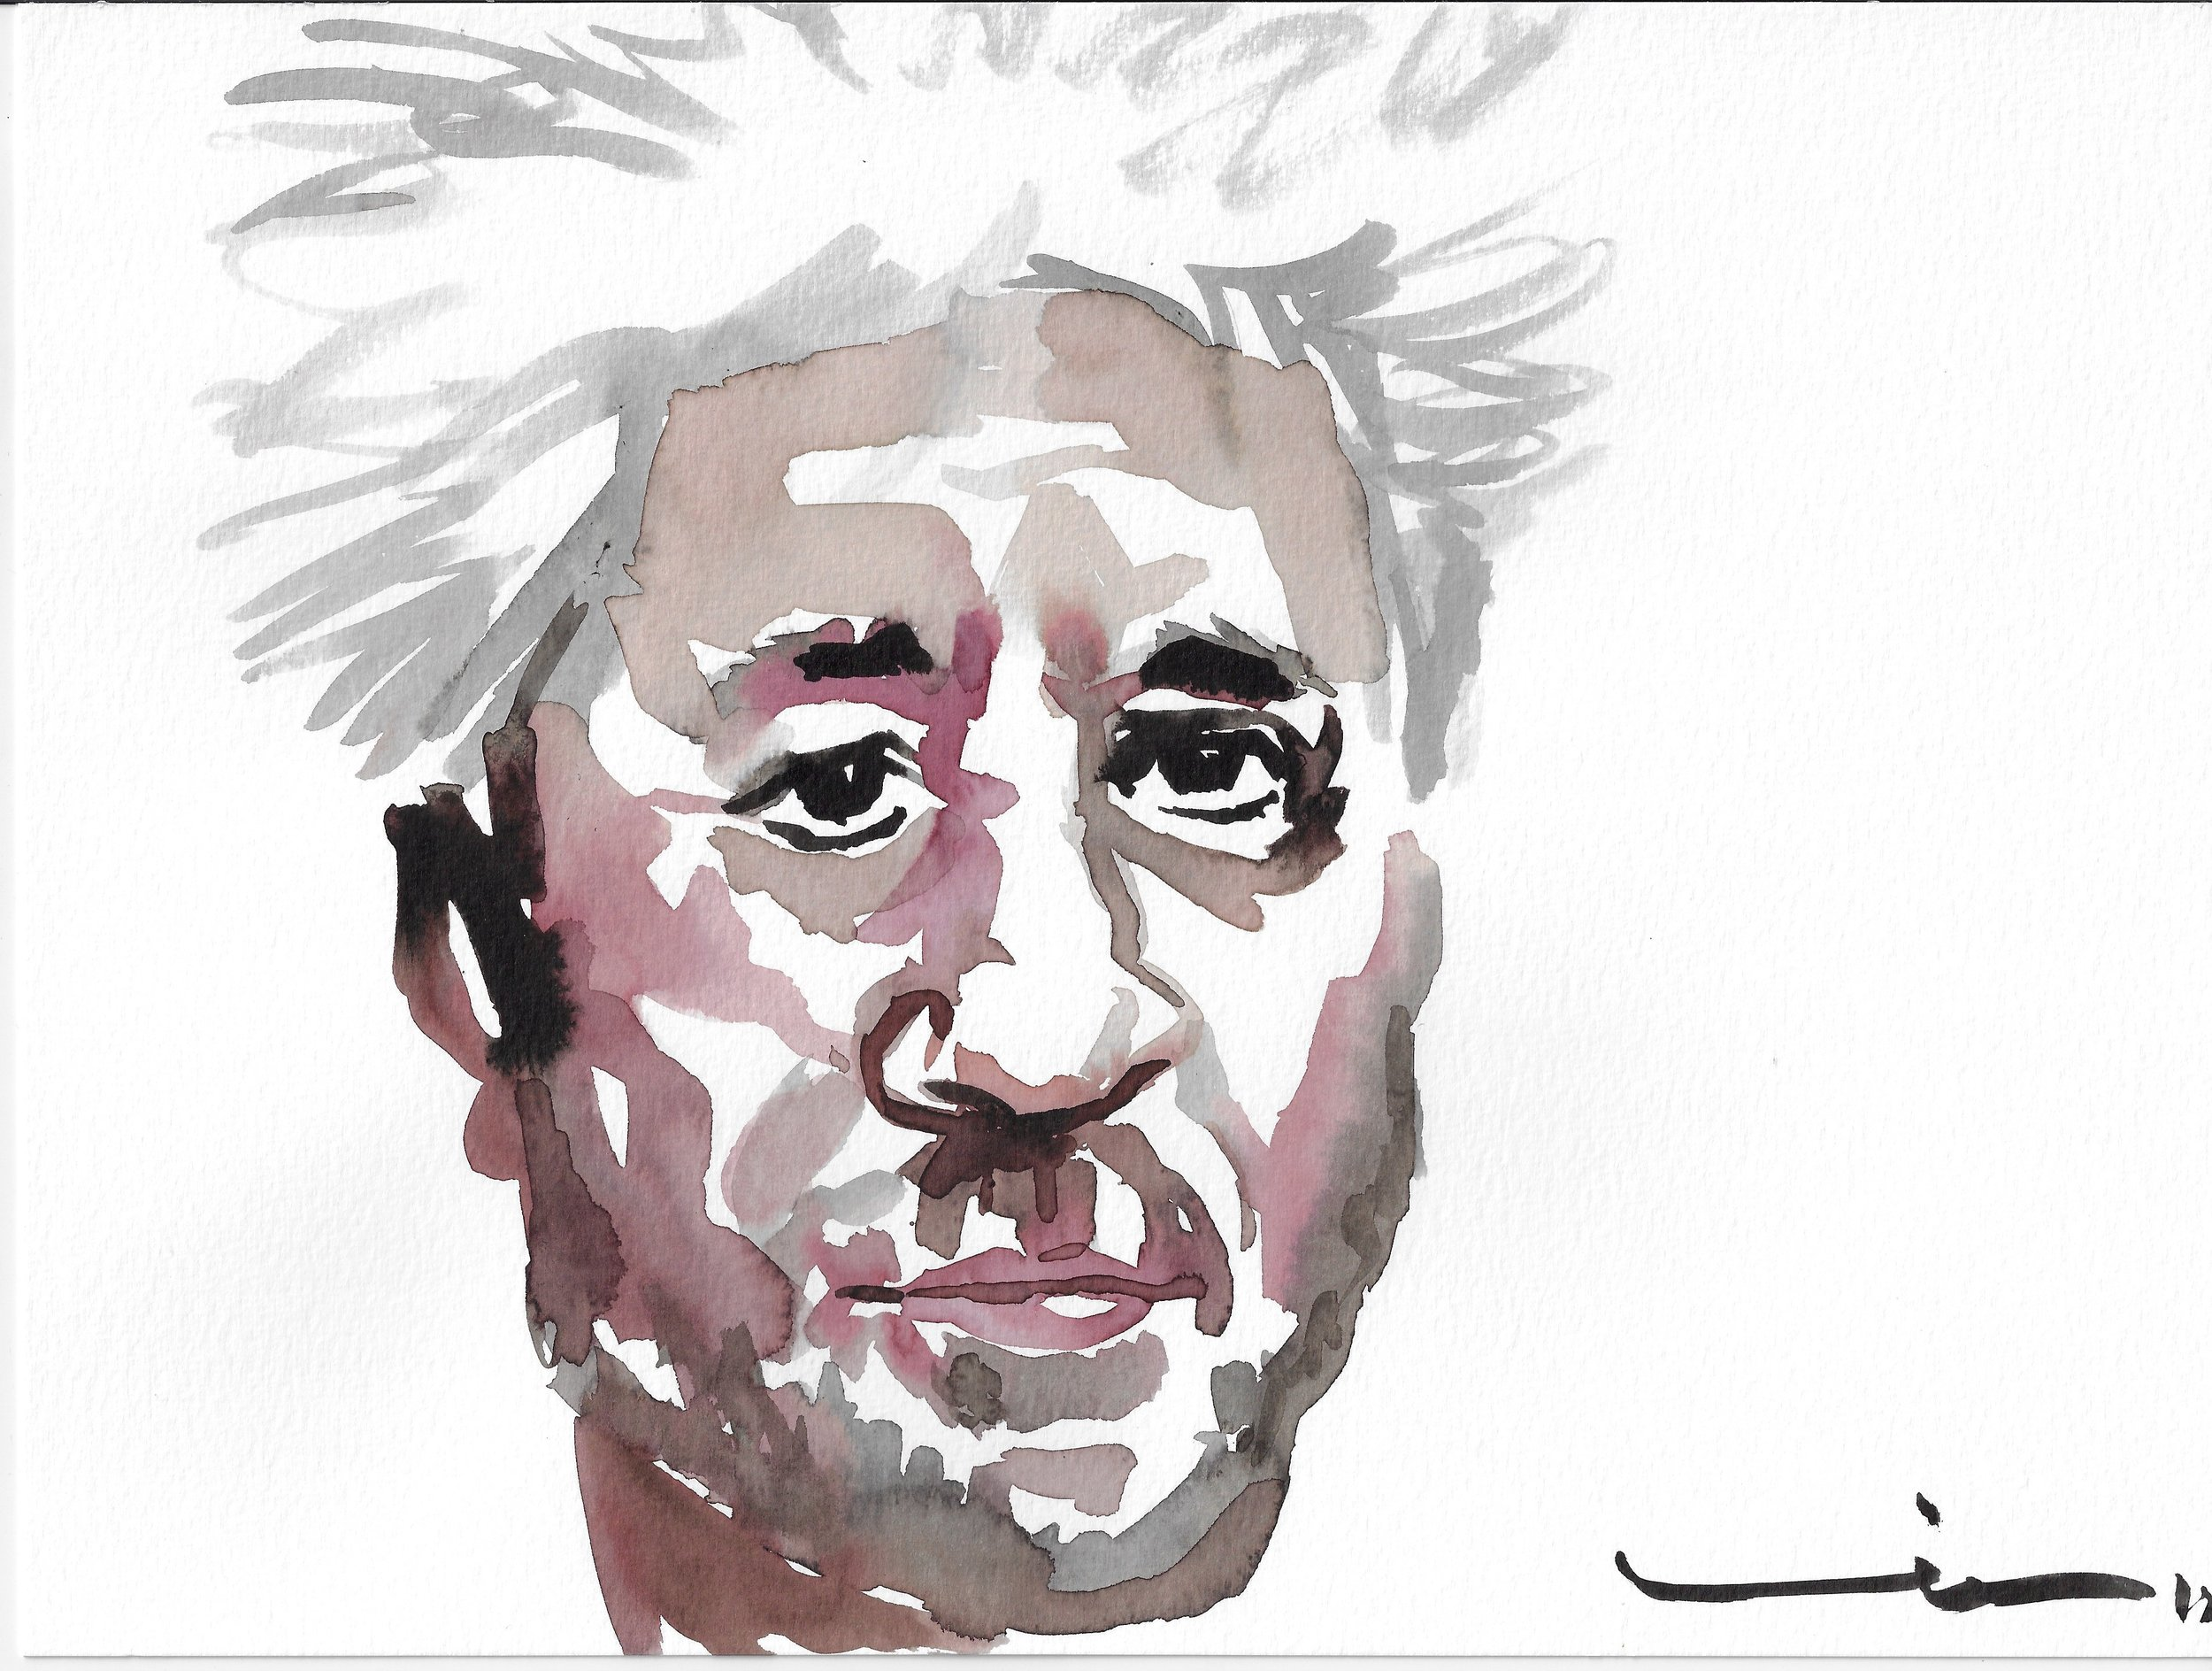 Pedro Almodovar, movie director